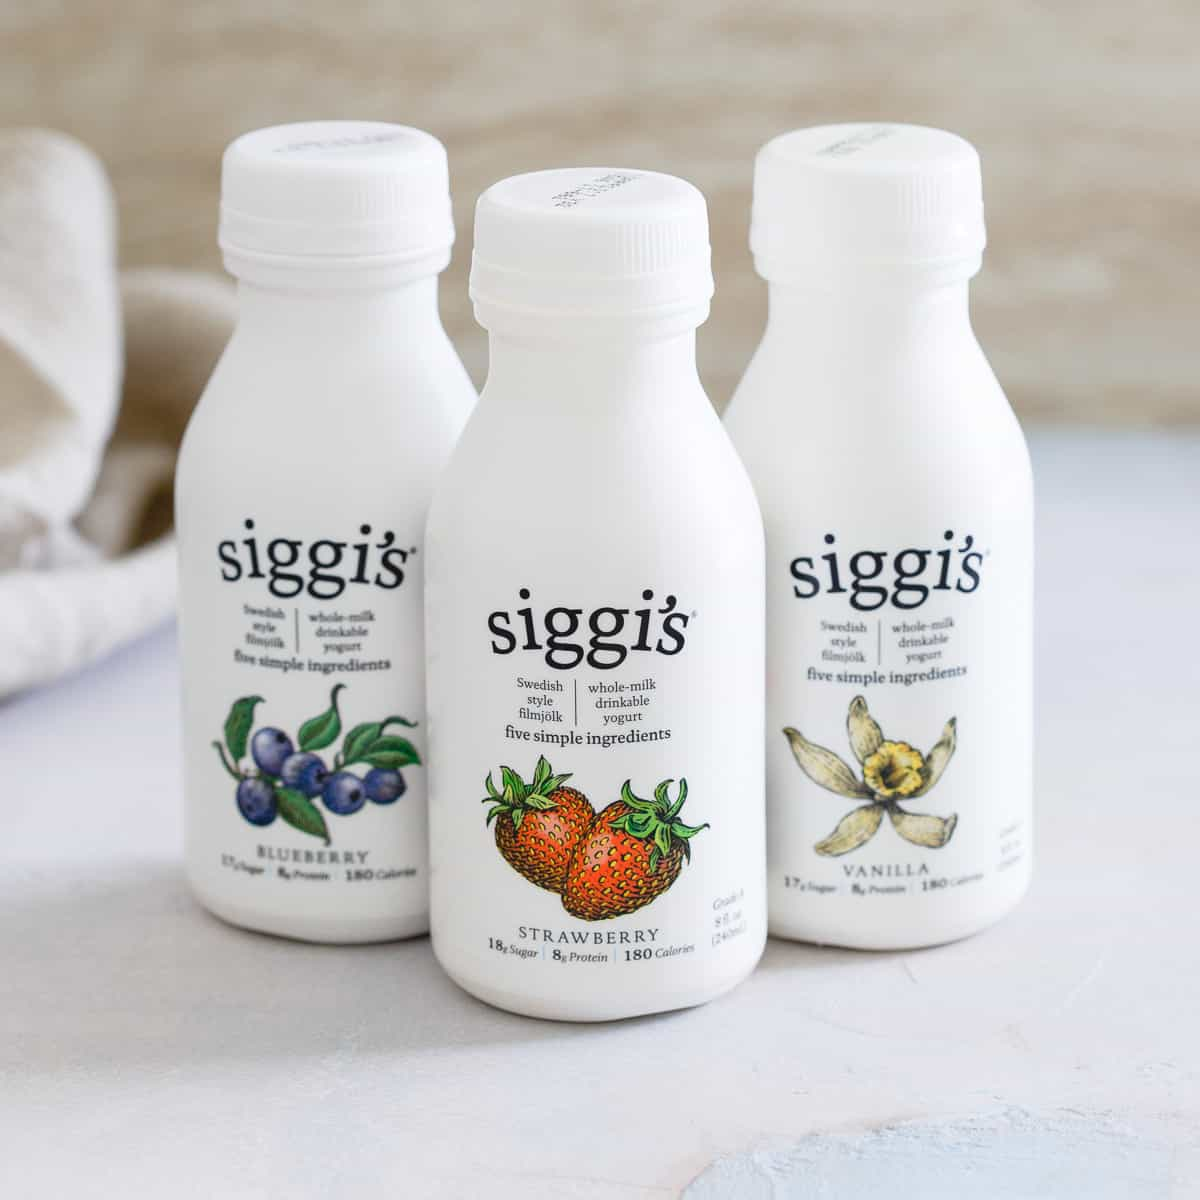 siggi's whole milk drinkable yogurt come in blueberry, strawberry and vanilla for a great healthy on-the-go option when you're rushed for breakfast.